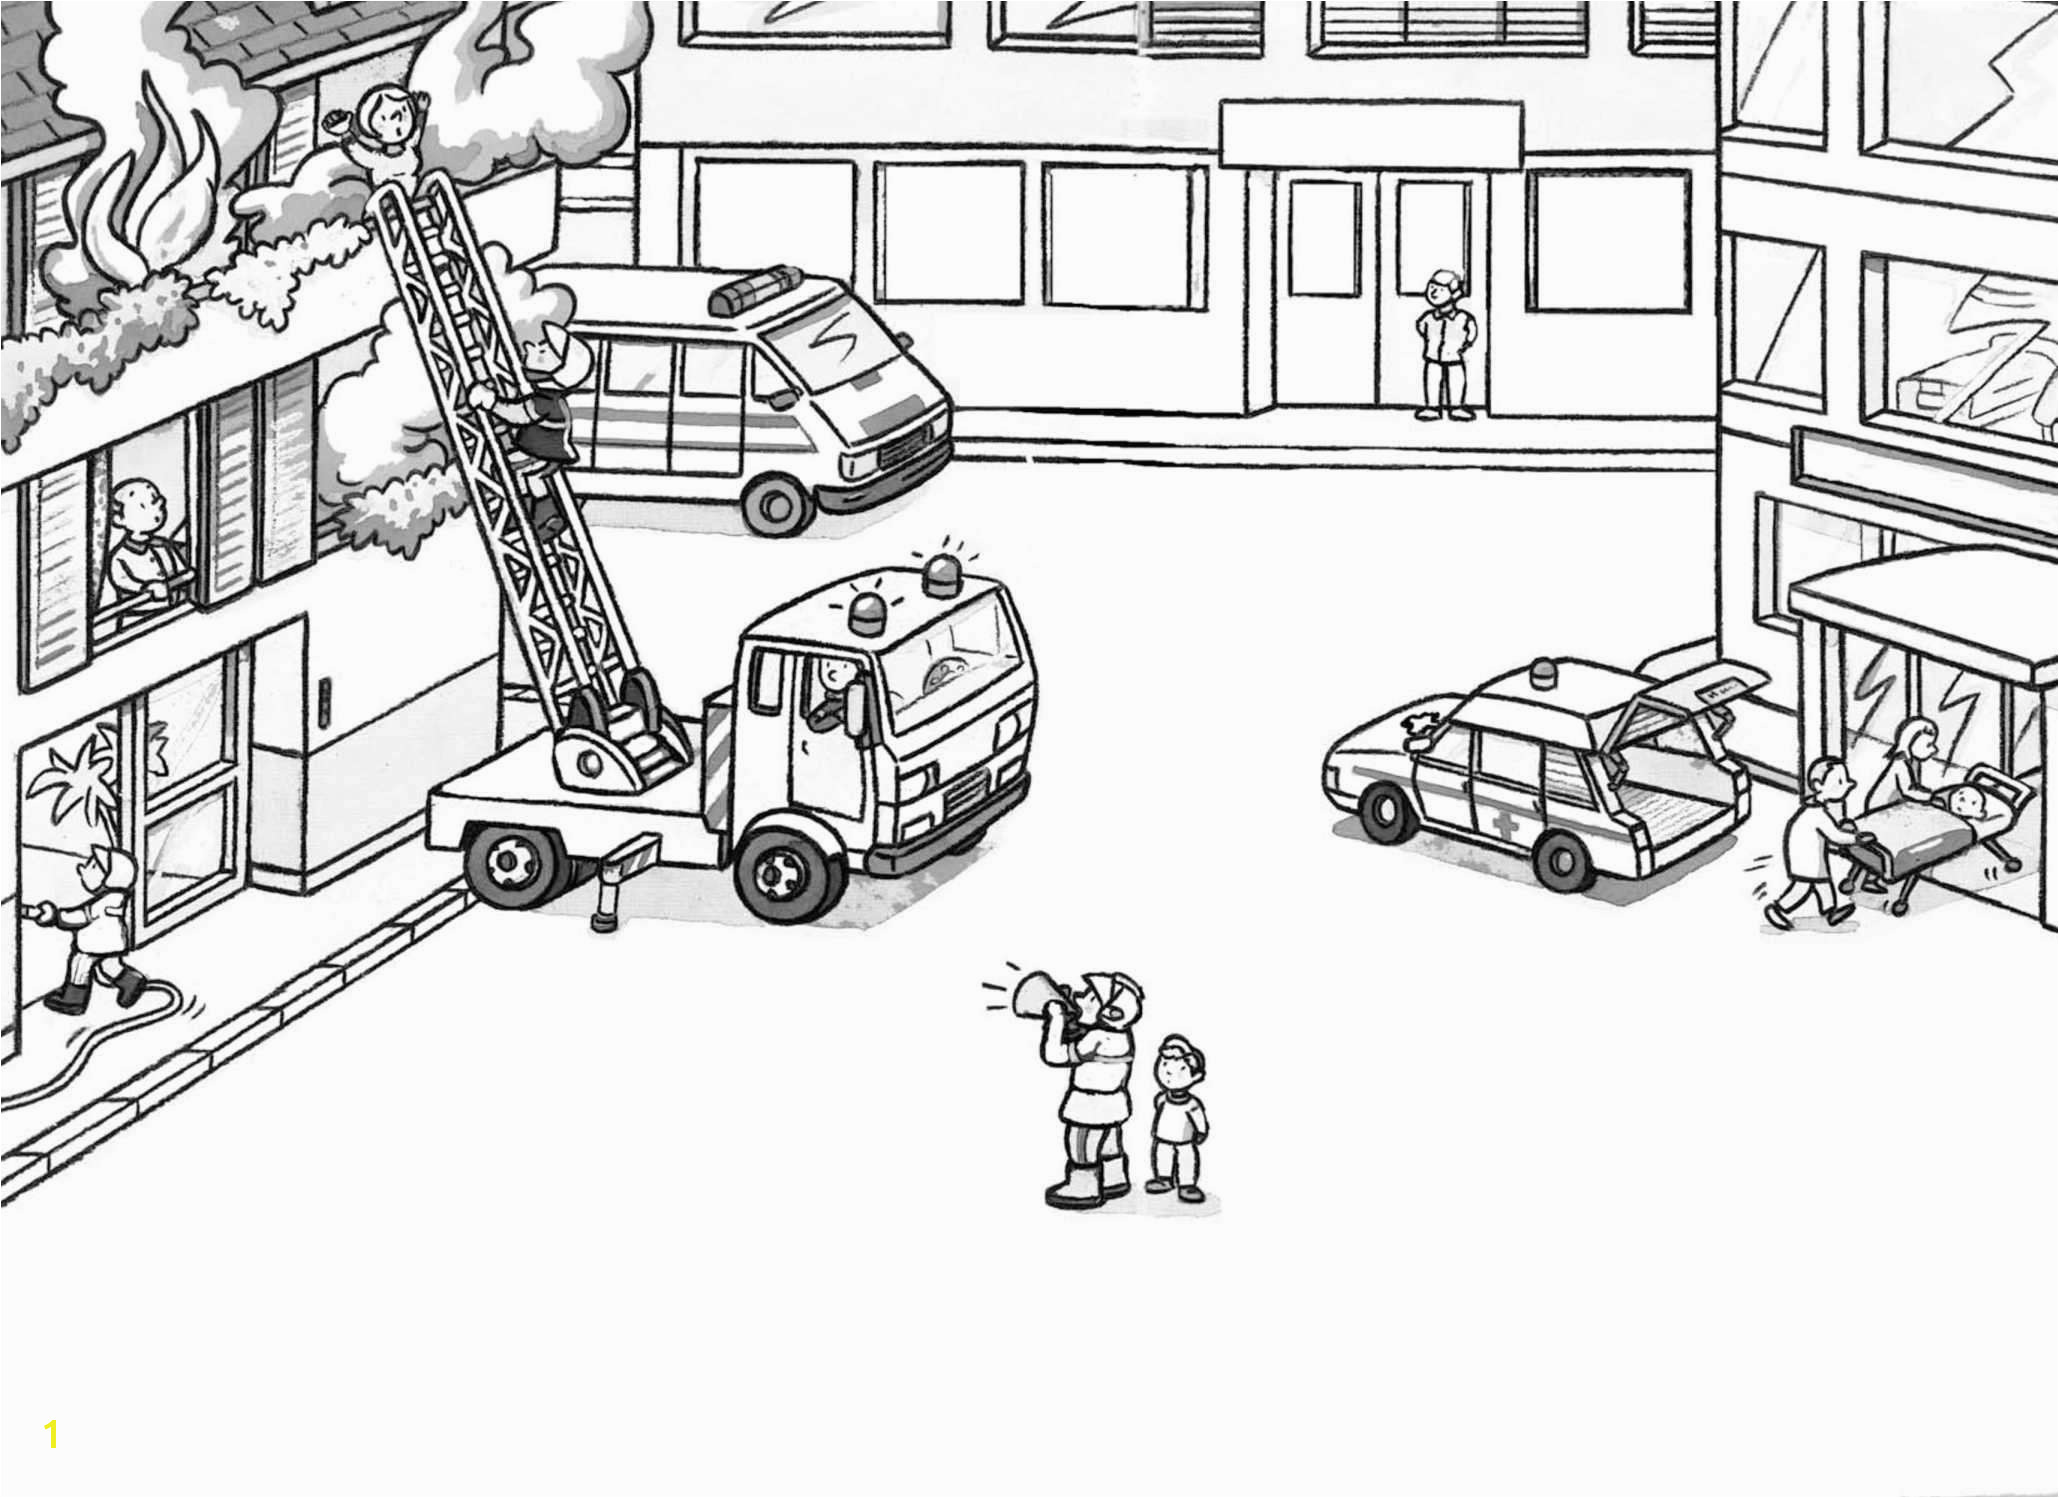 Lego Truck Coloring Pages Coloring Pages for Boys Lego Printable Neu Ausmalbilder Lego City Polizei